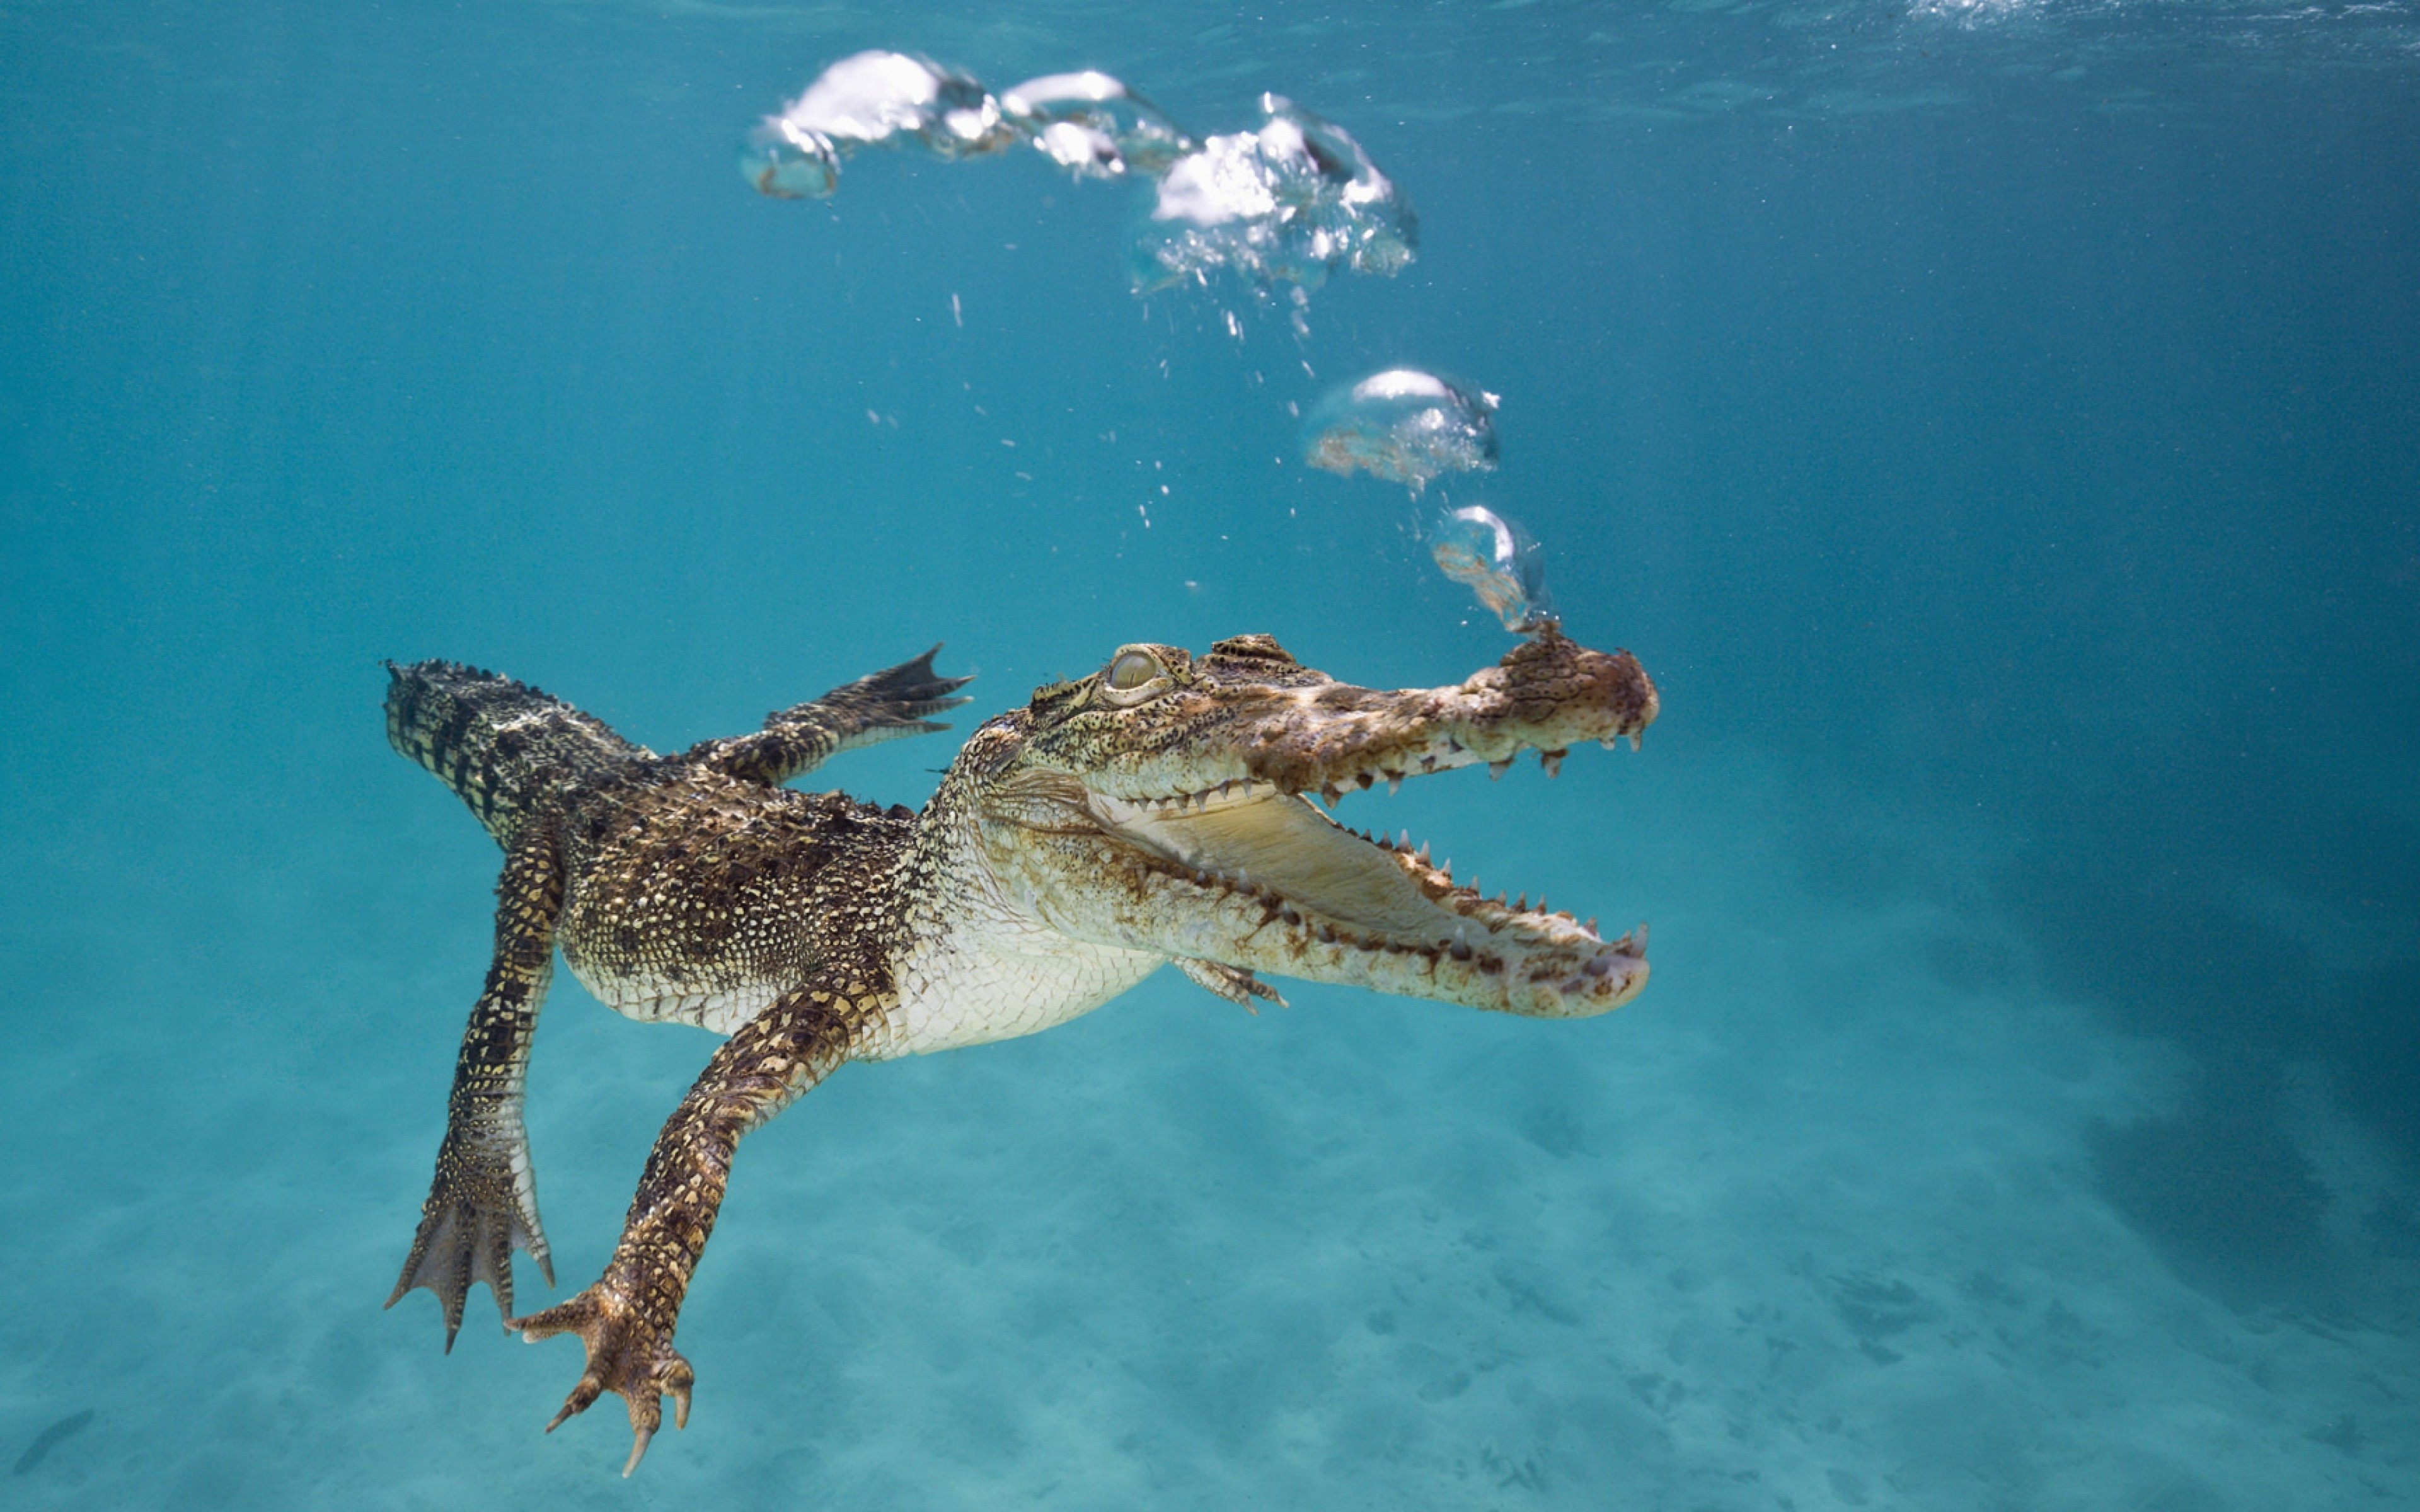 Images Of Cute Wallpapers For Phone Wallpaper Crocodile Calf Swim Underwater Bubbles